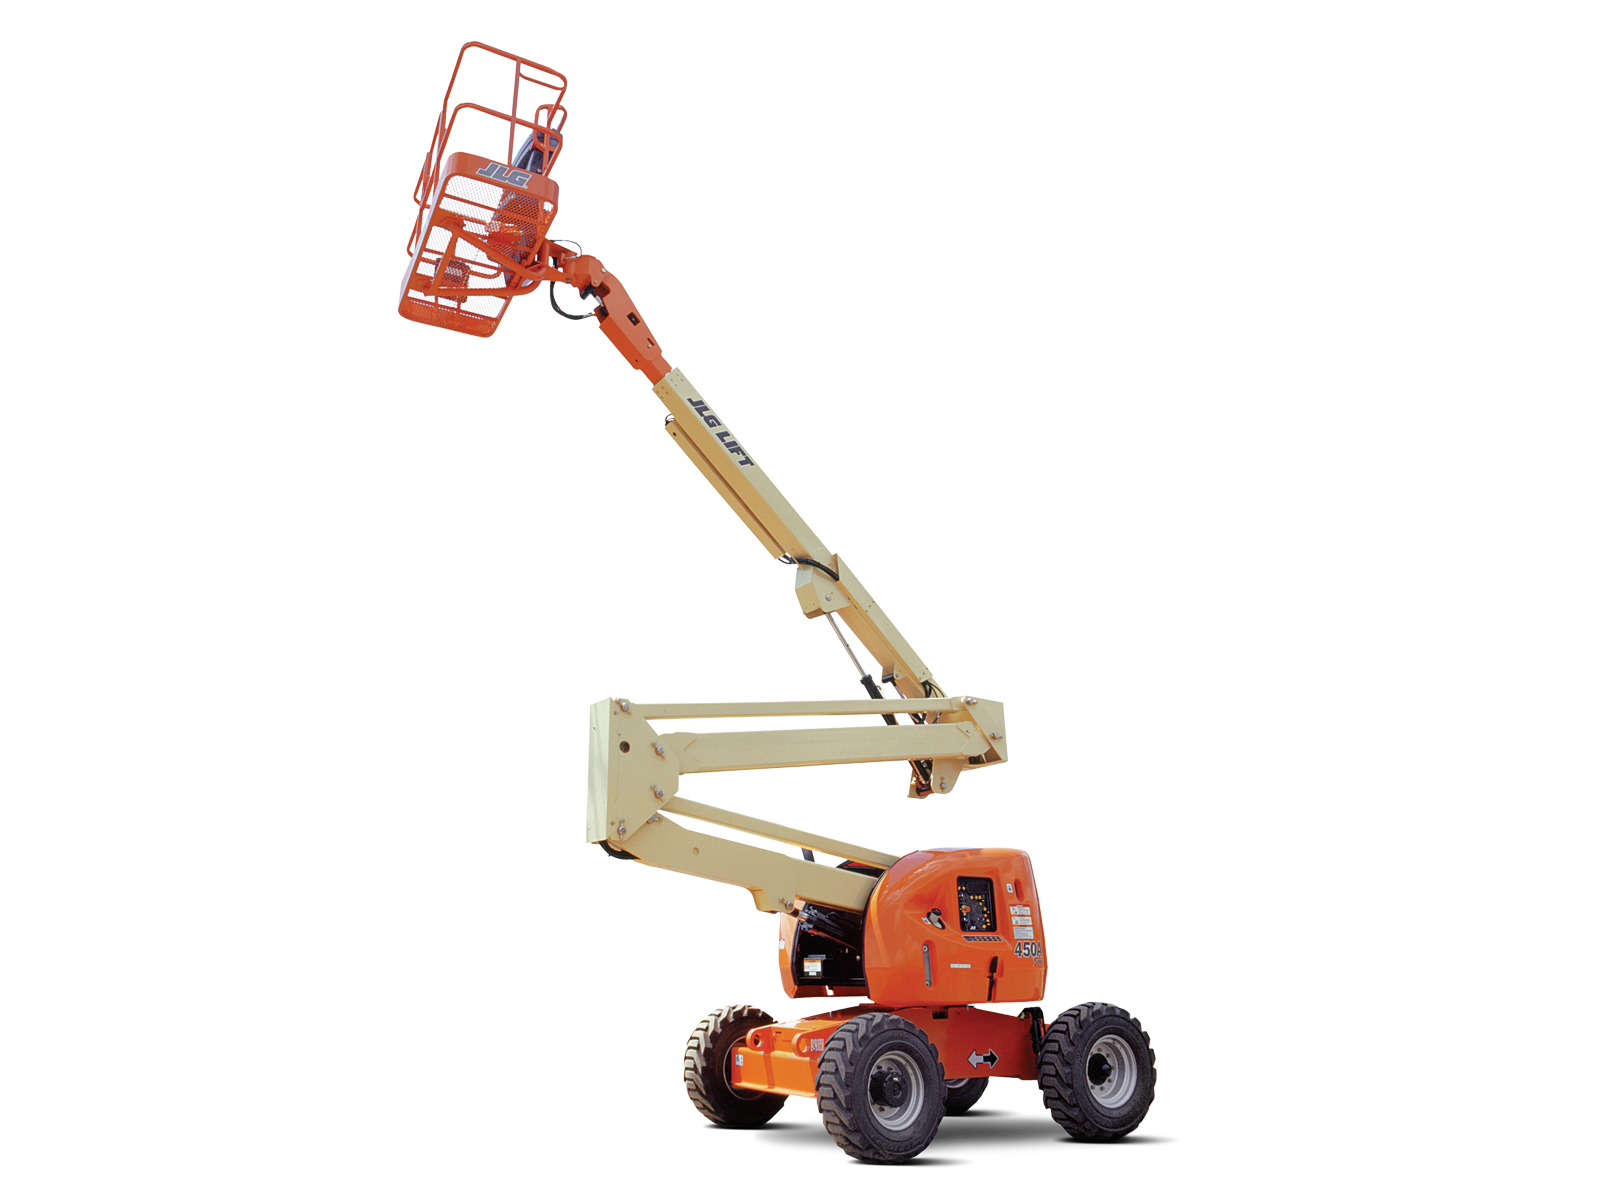 JLG Articulating Boom Lifts 450A